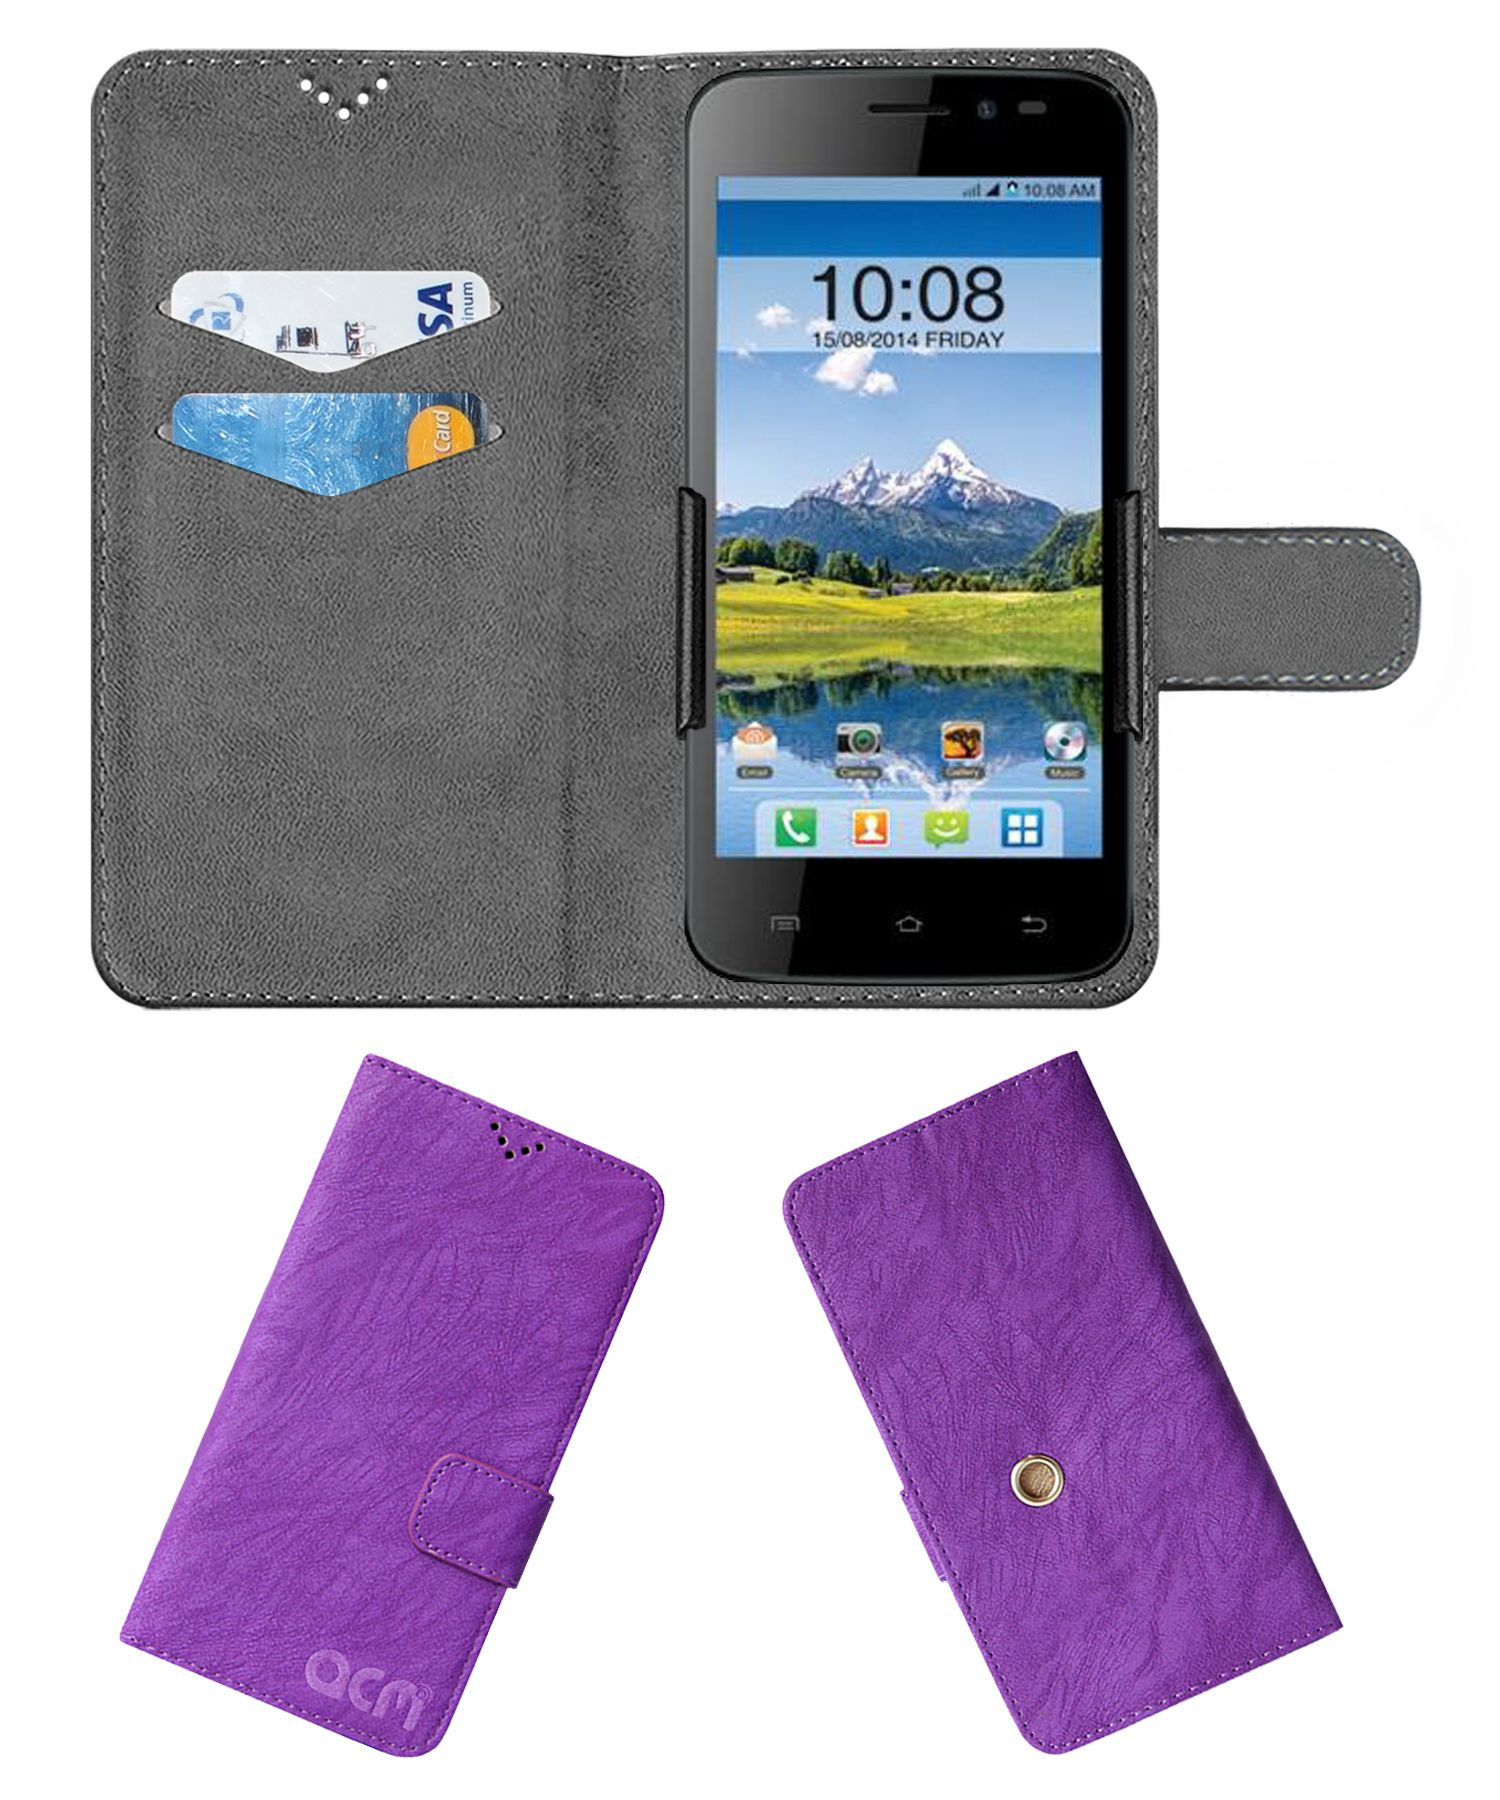 Intex Aqua Q1 Flip Cover by ACM - Purple Clip holder to hold your mobile securely